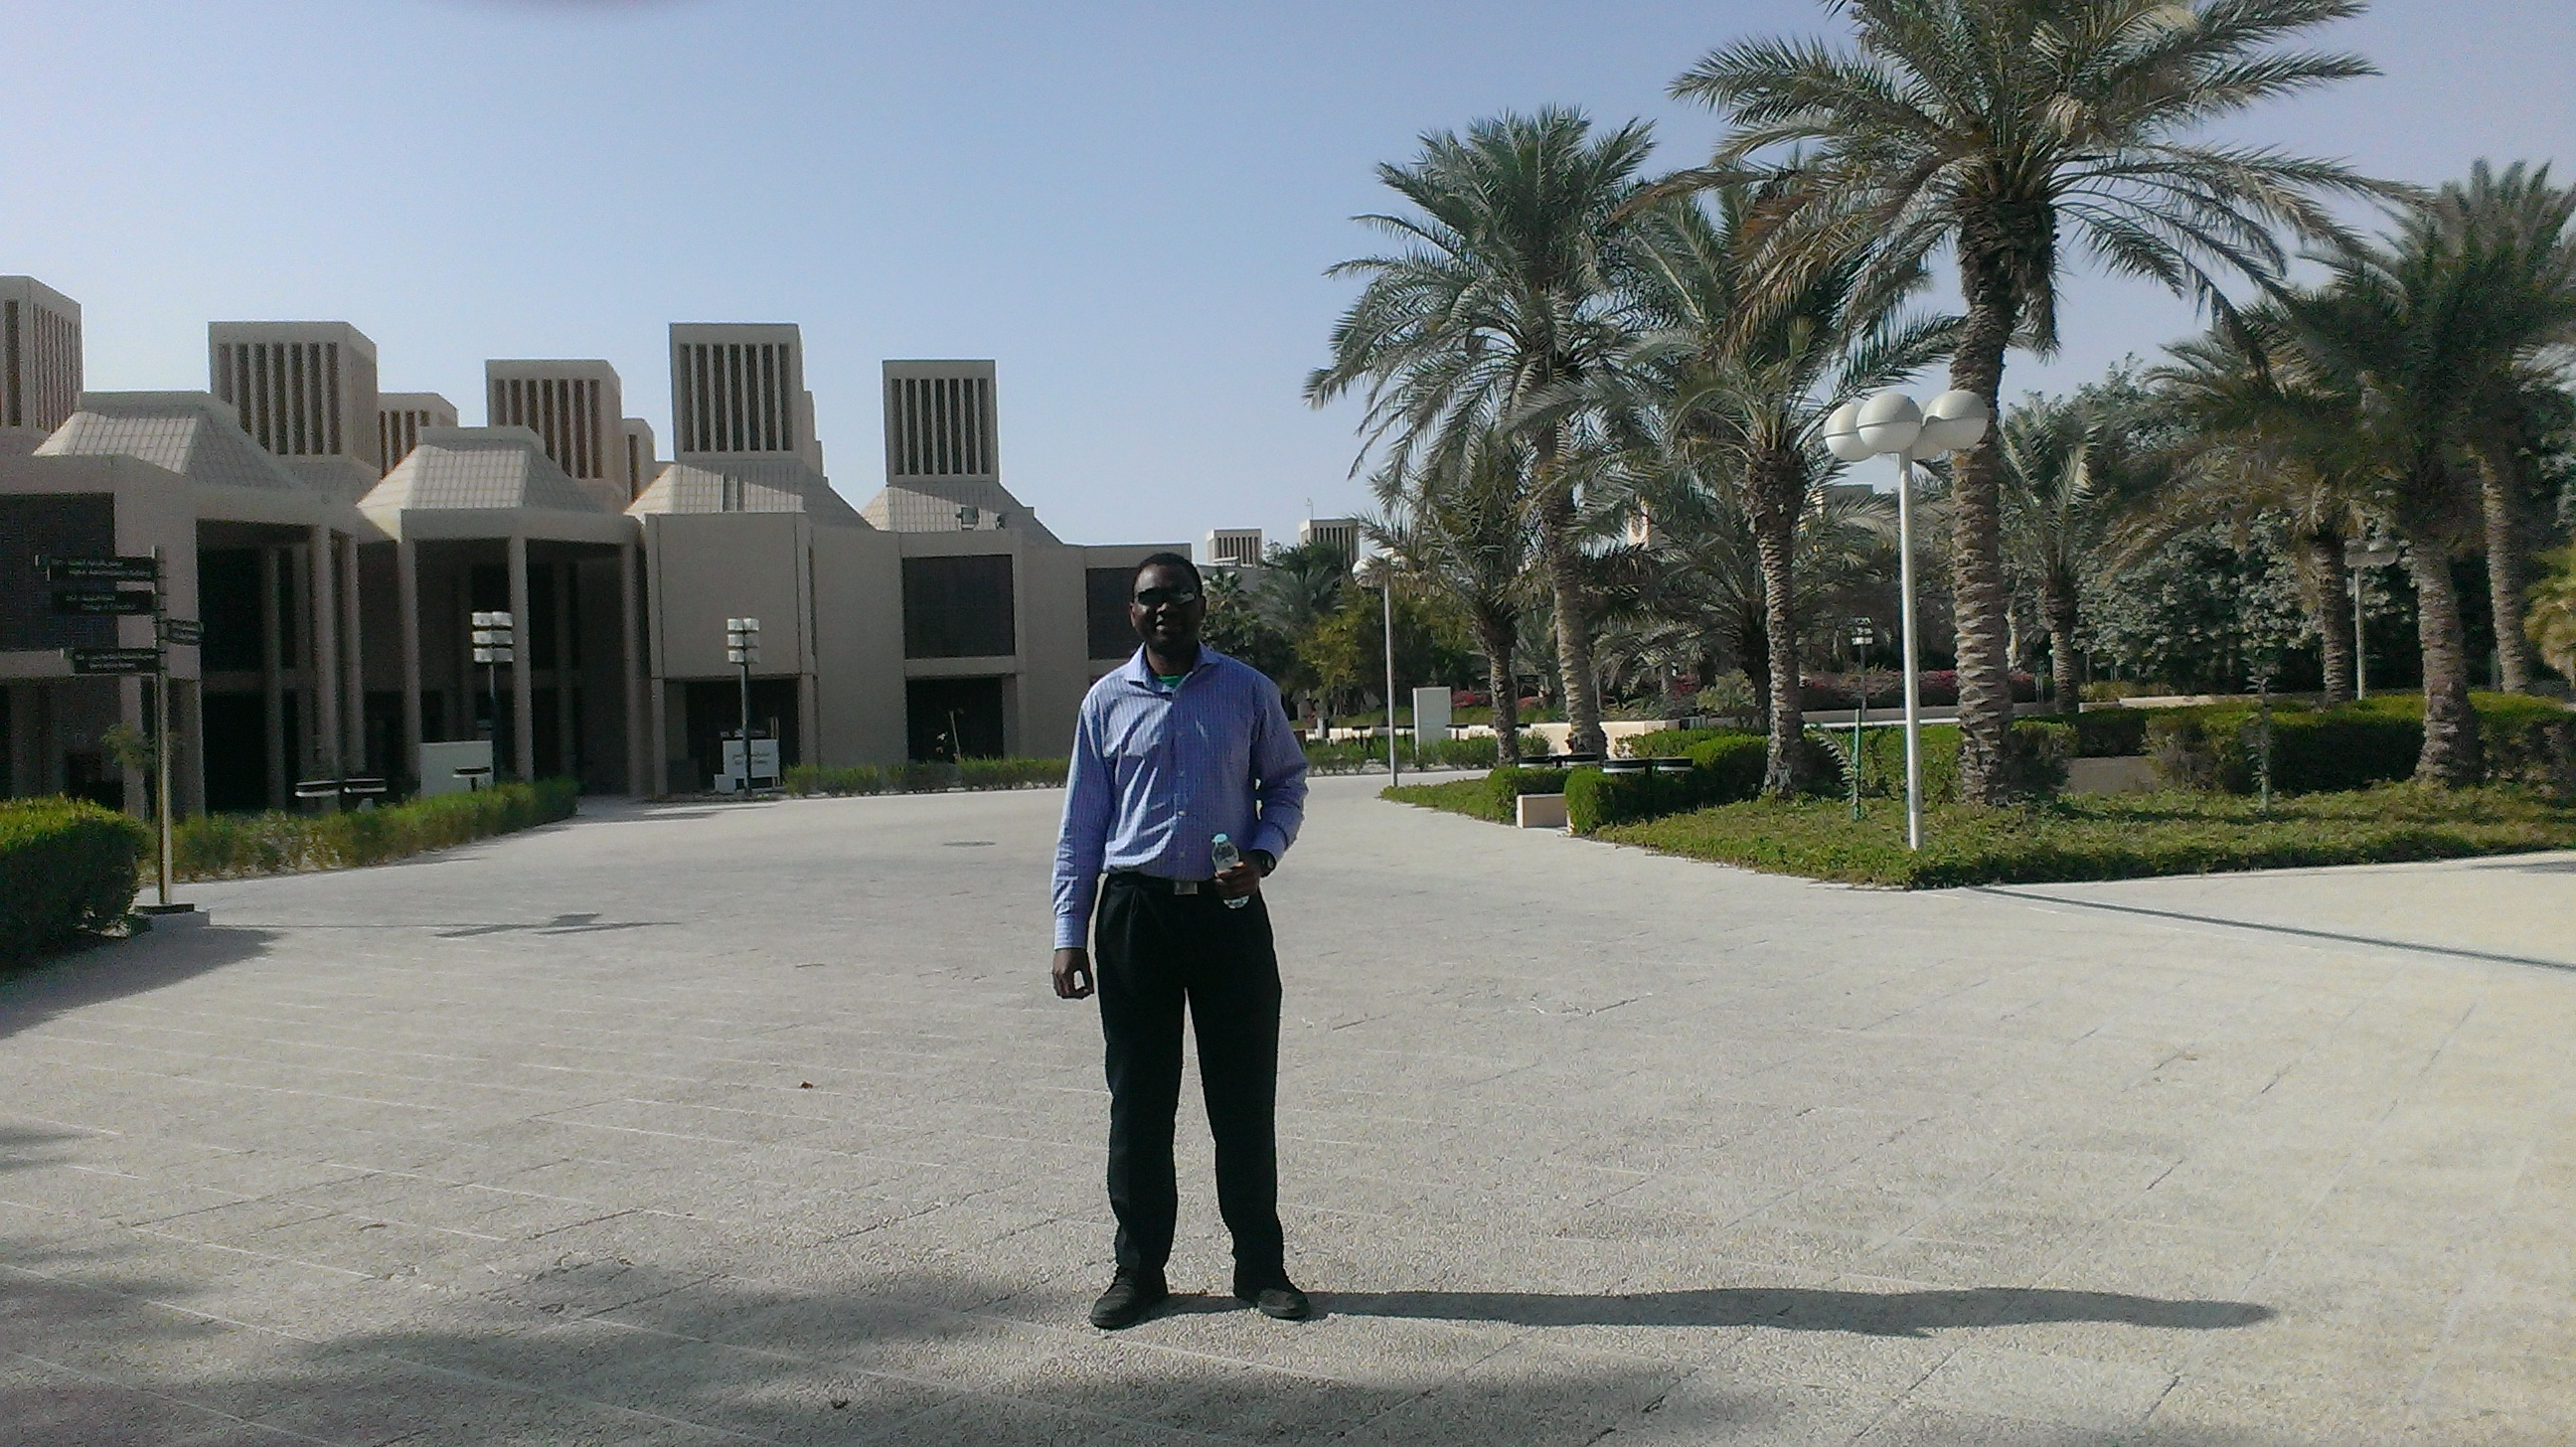 Stephane Ngueleu at Quatar University